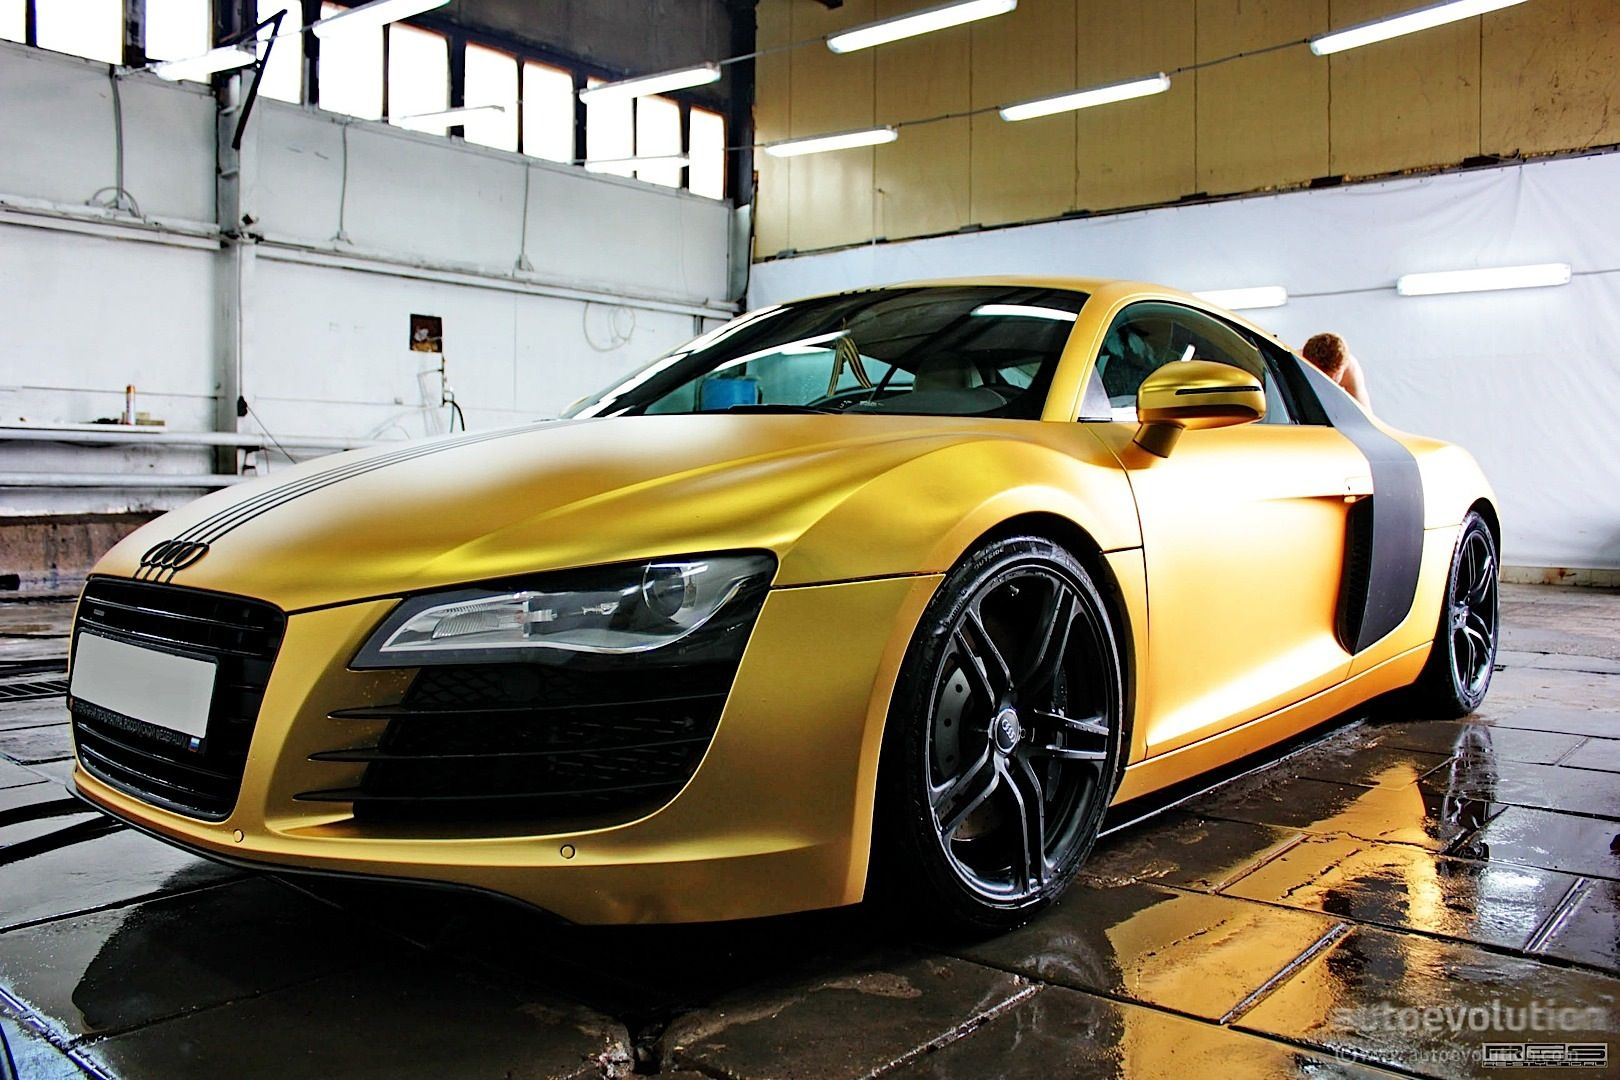 matte gold audi r8 in russia photo gallery 1 620 1 080 pixels cars pinterest audi. Black Bedroom Furniture Sets. Home Design Ideas